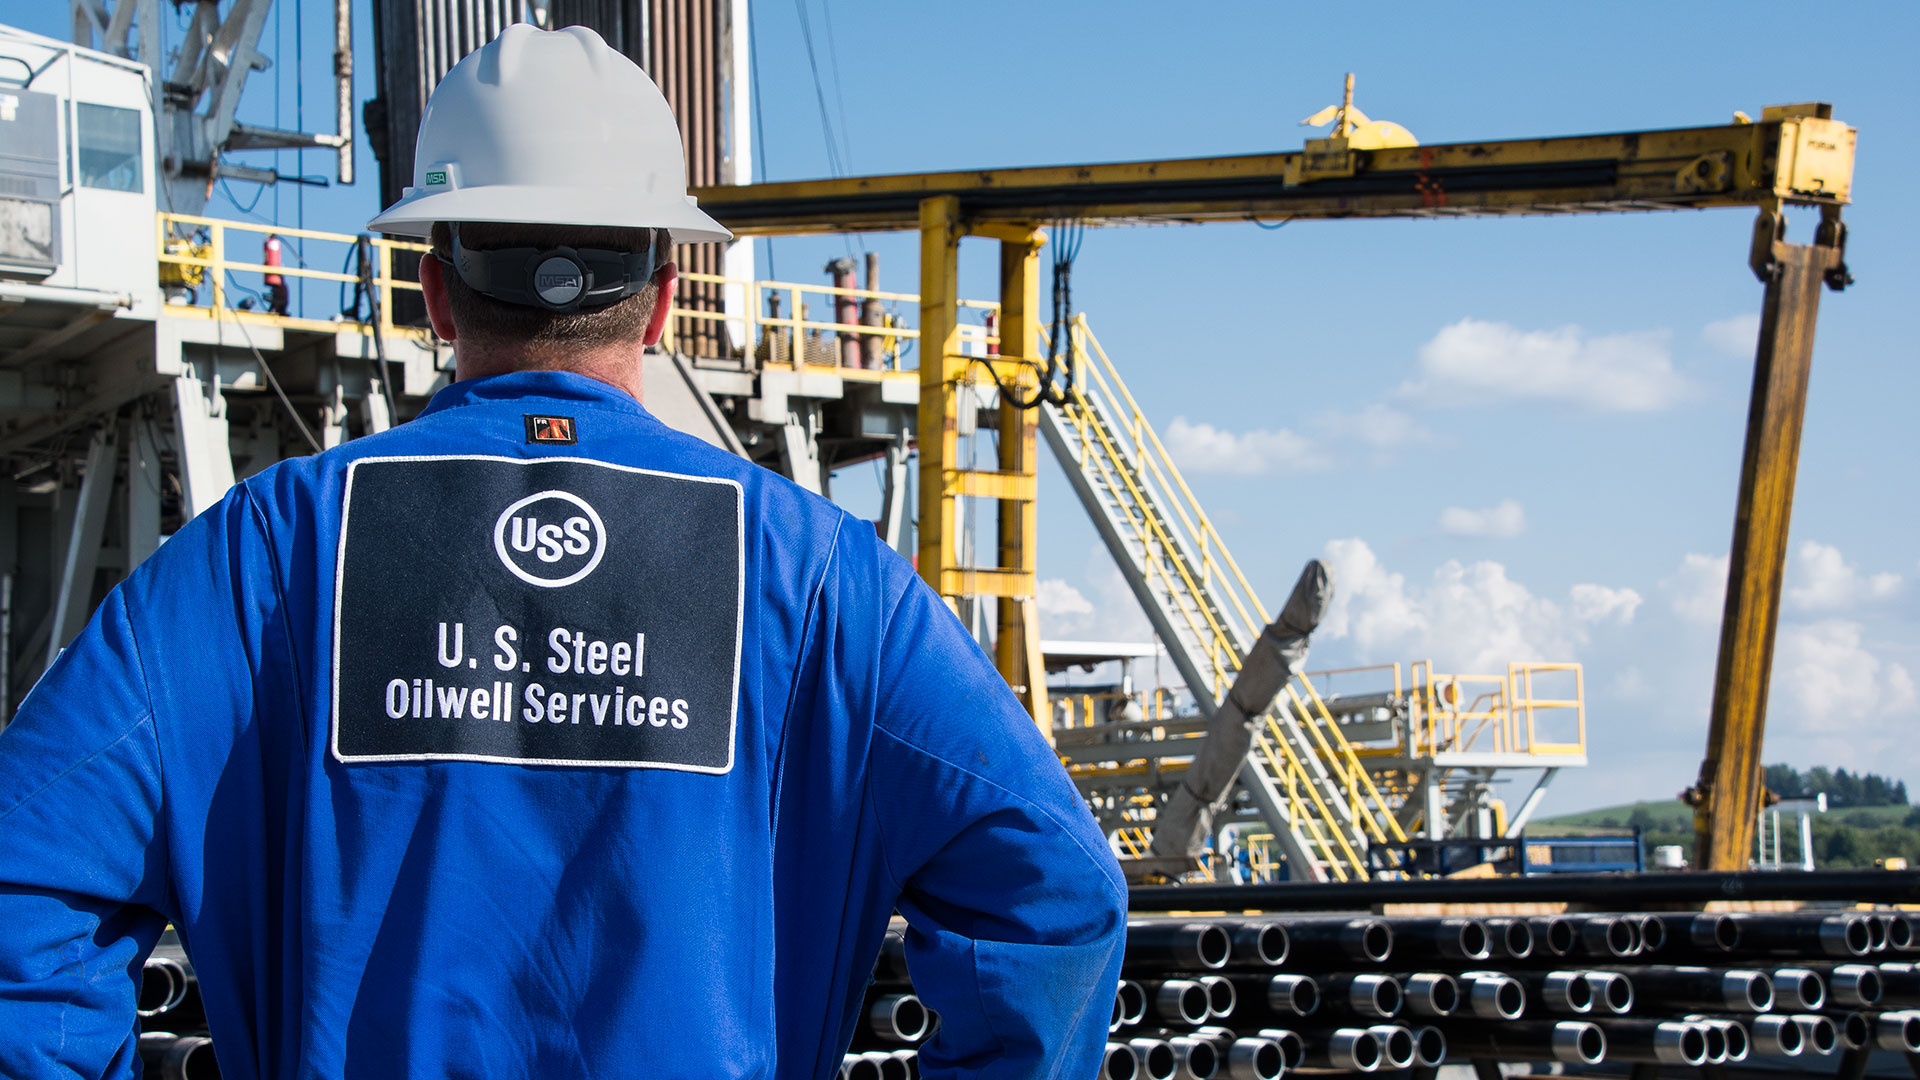 U. S. Steel Tubular Products Rig Site Services